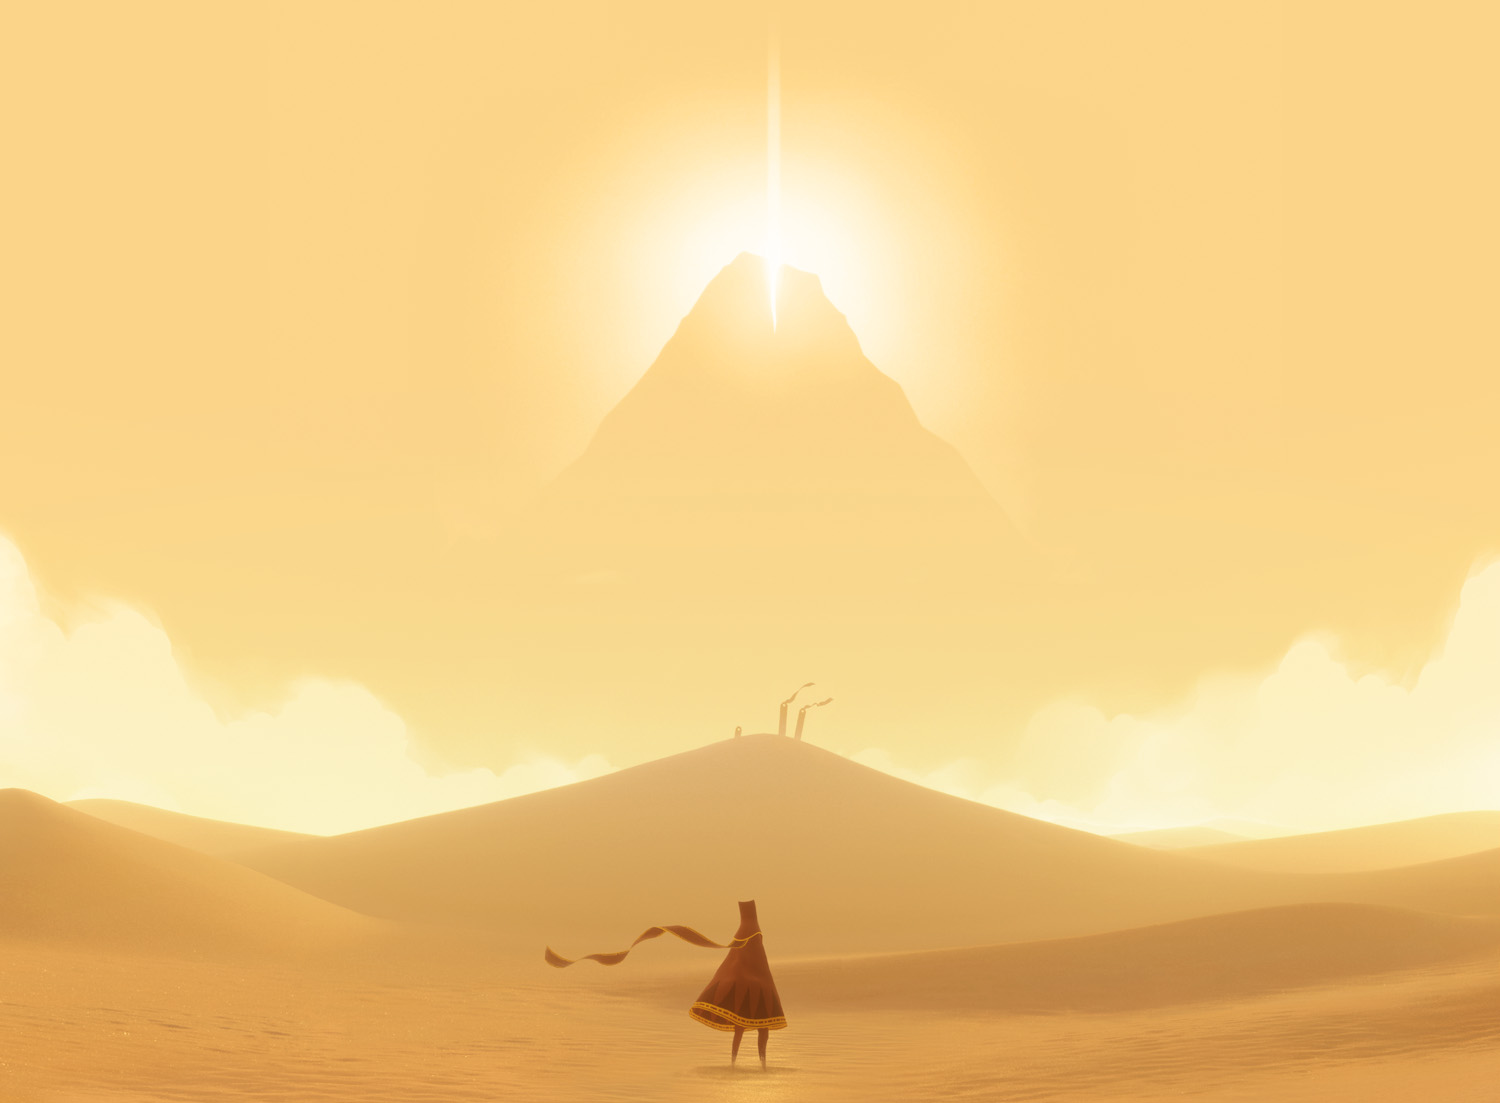 2012_Journey_A4345_thatgamecompany_Still_001-1_ltr